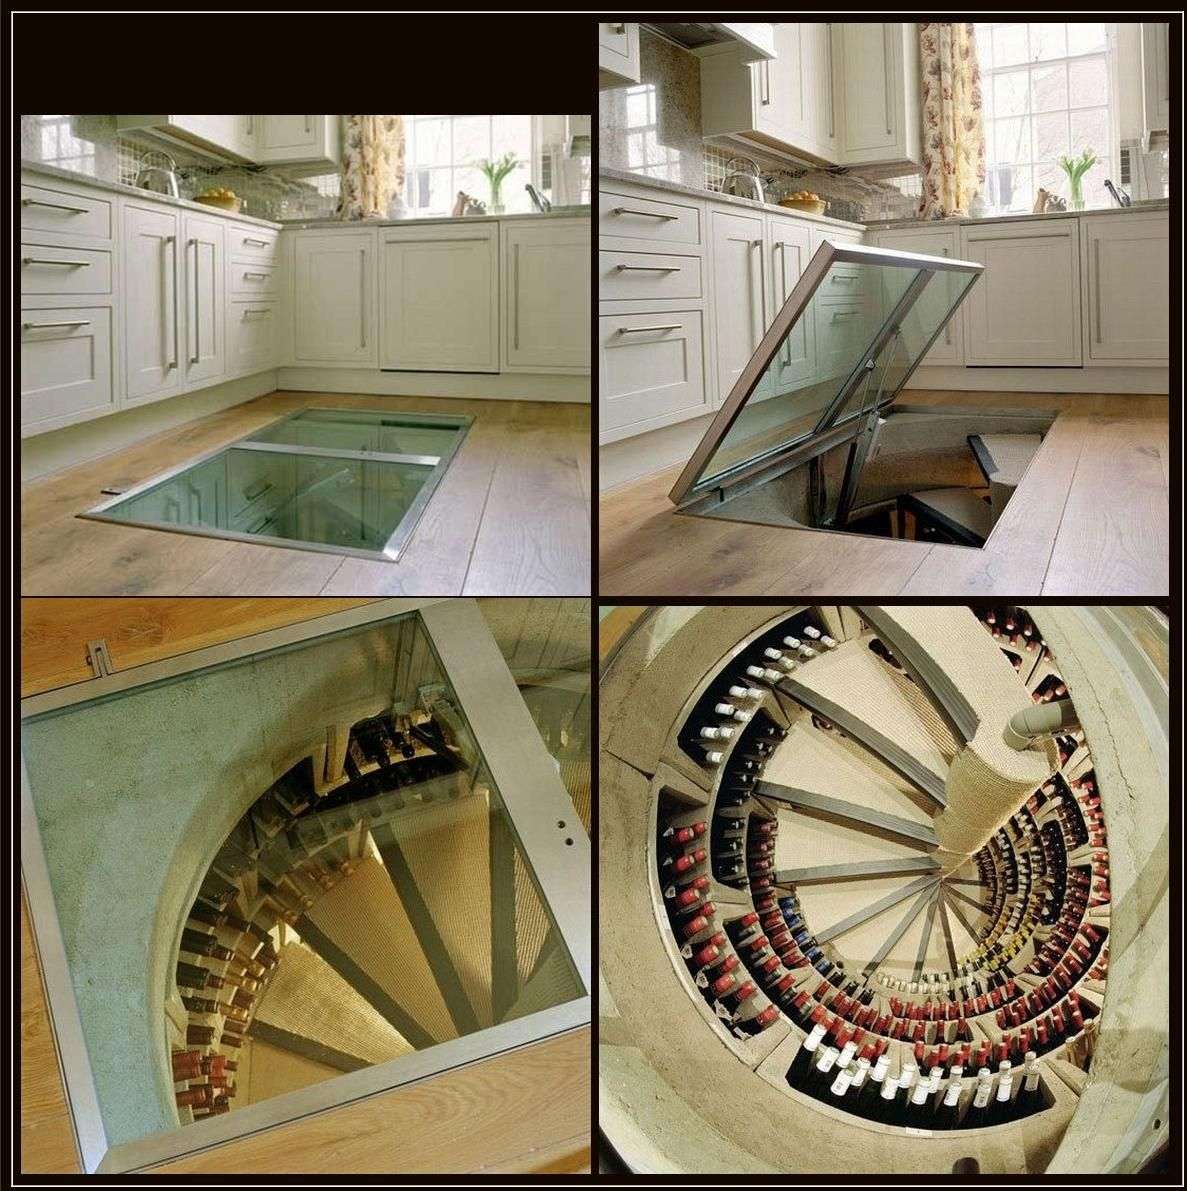 I D Never Leave The House Which Would Be No Change Really Except I D Have A Super Cool Wine Cellar Spiral Wine